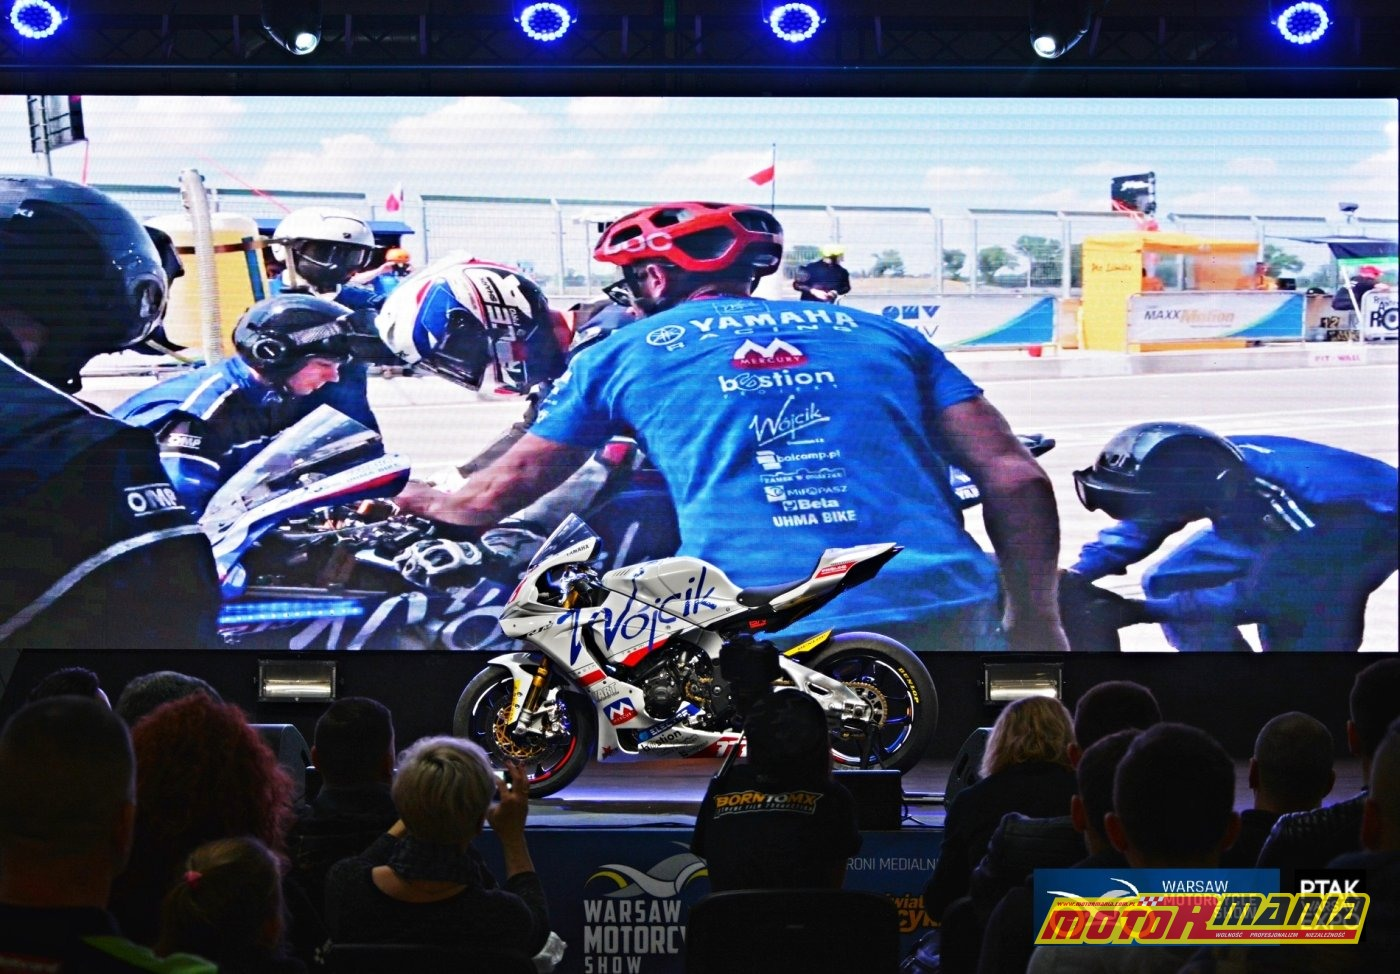 Warsaw Motorcycle Show 2019 (2)